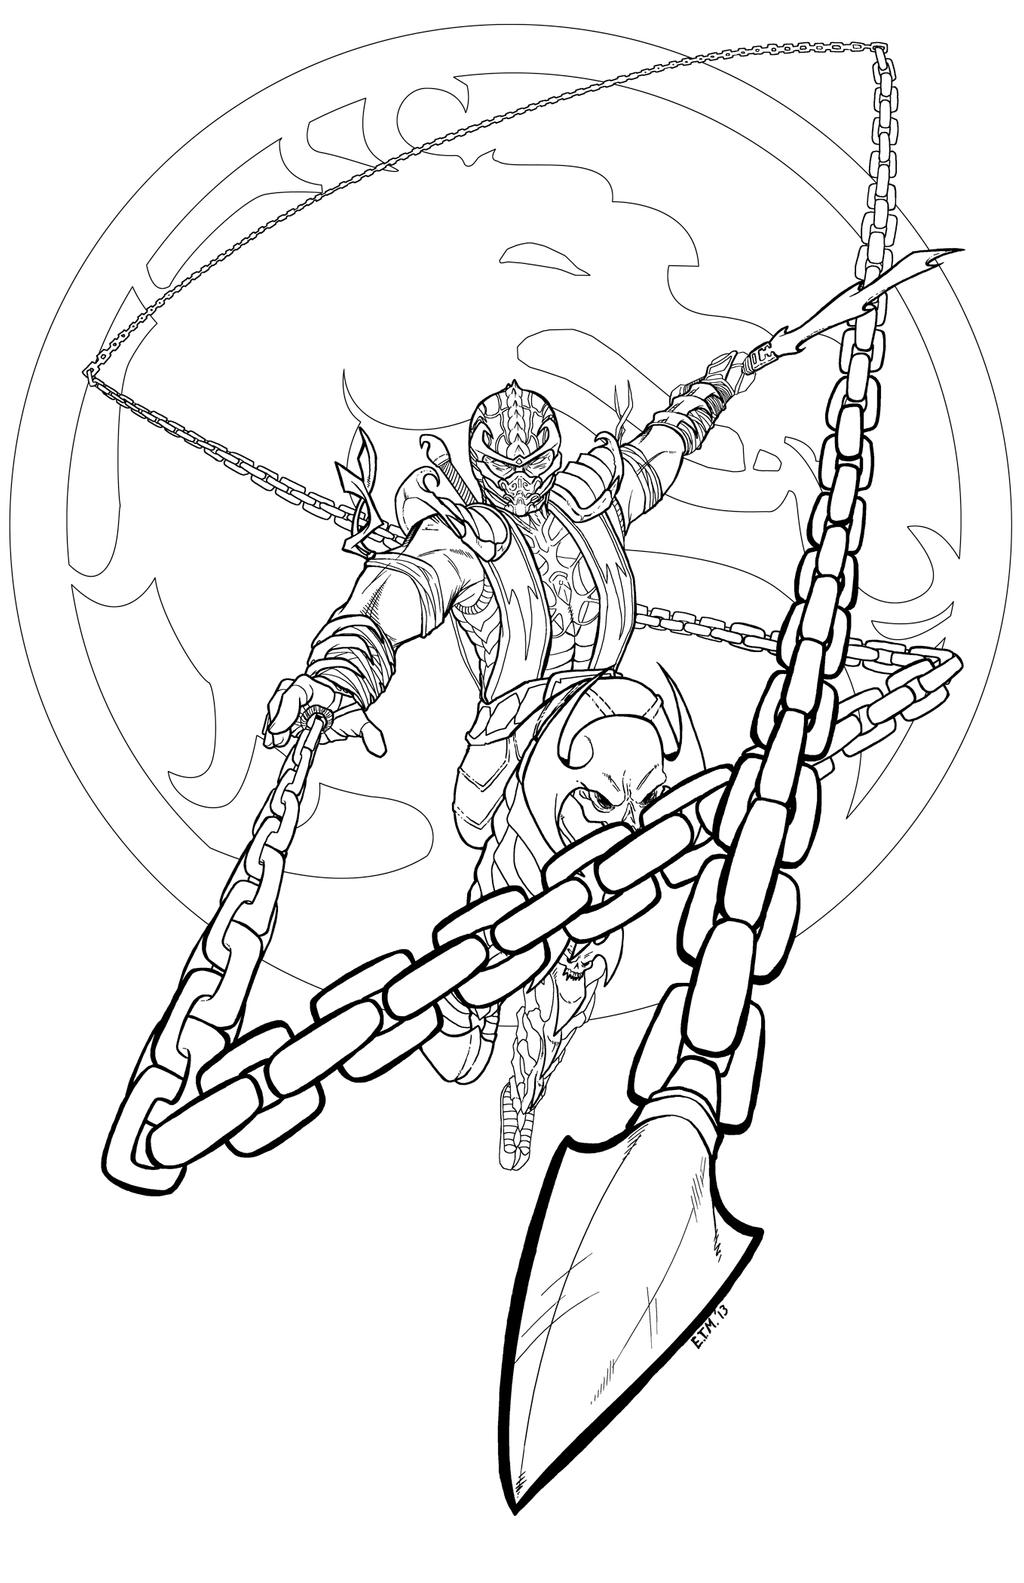 Mortal kombat scorpion by teamzoth on deviantart for Scorpion coloring page